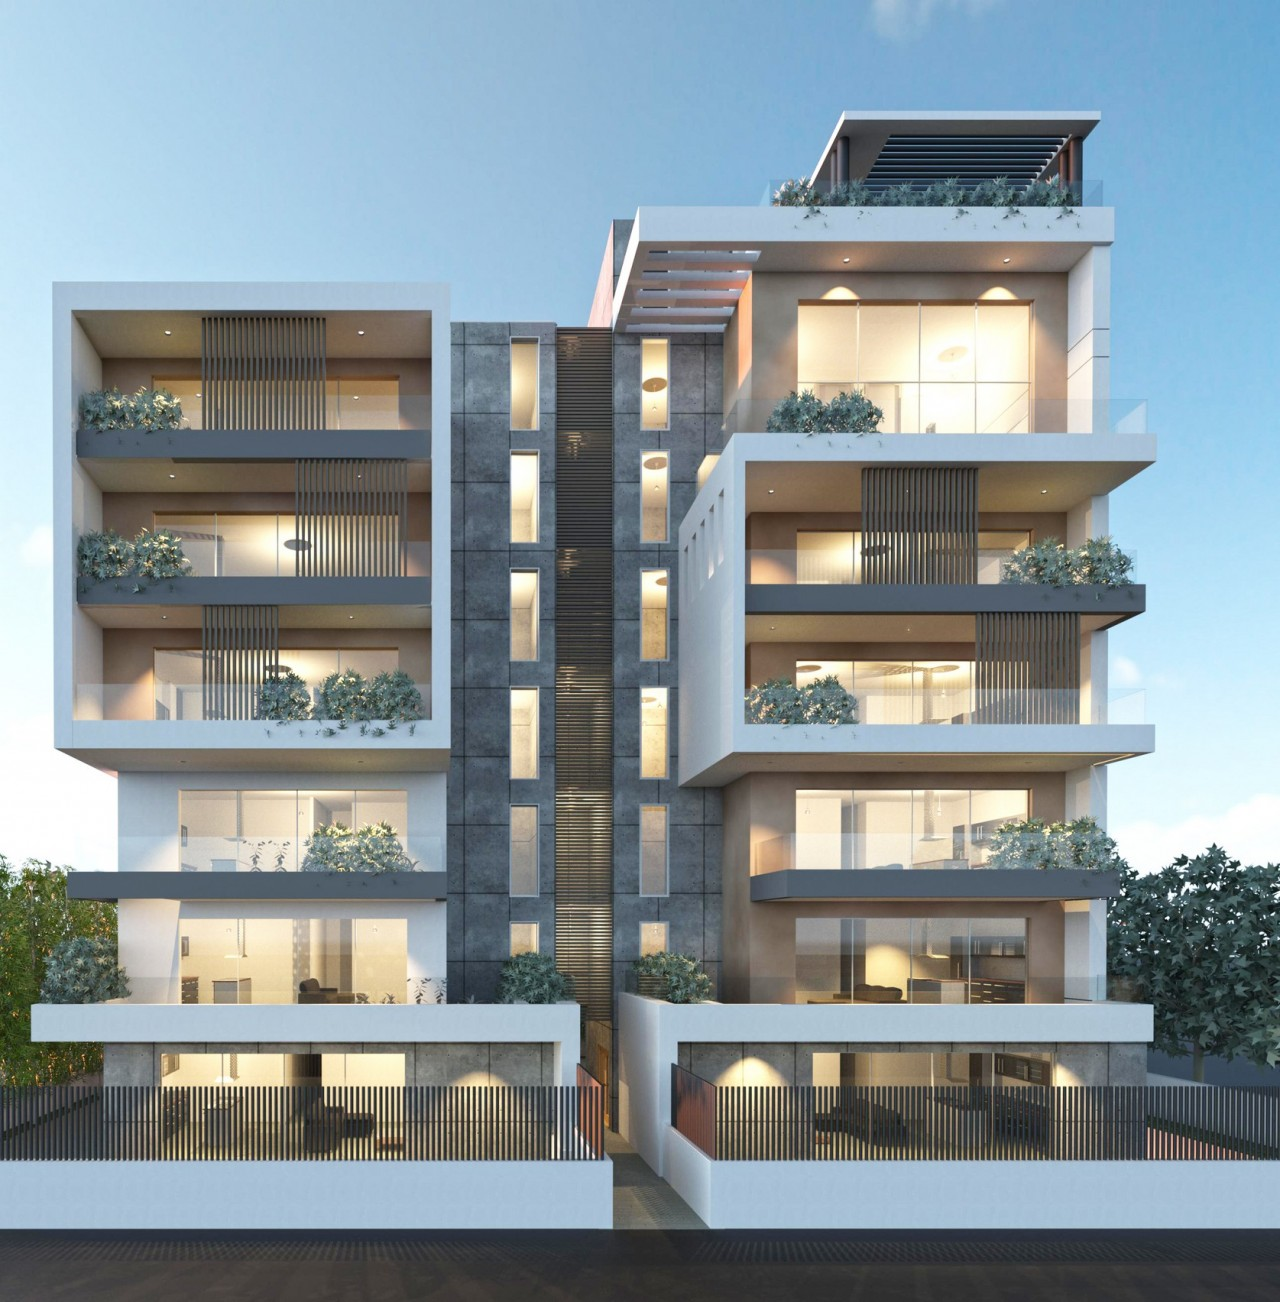 For Sale: Apartment (Flat) in City Area, Paphos    Key Realtor Cyprus